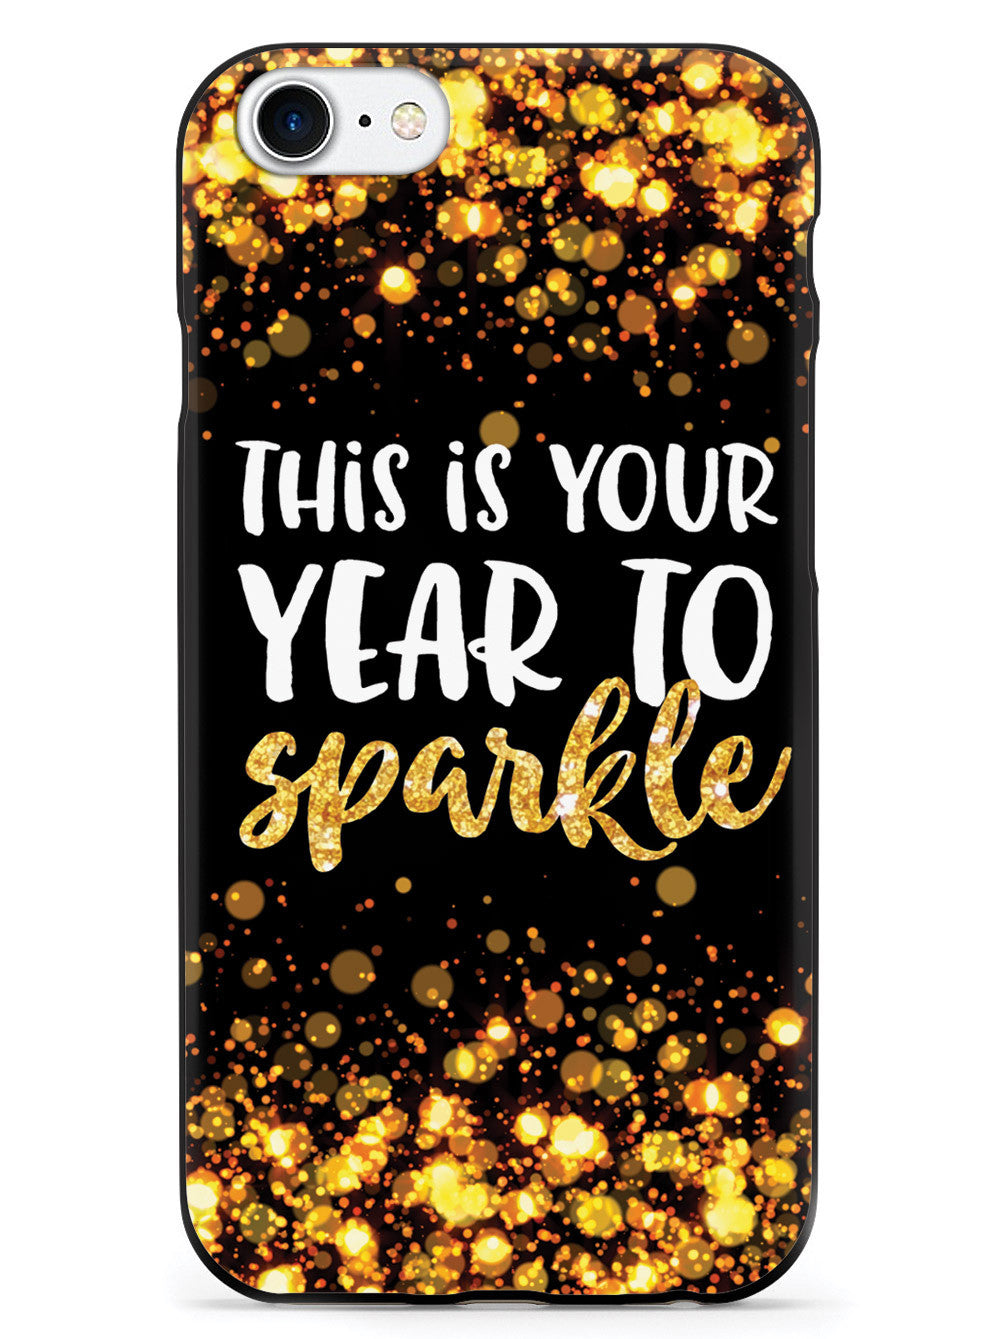 This is your Year to Sparkle - Black and Gold Case